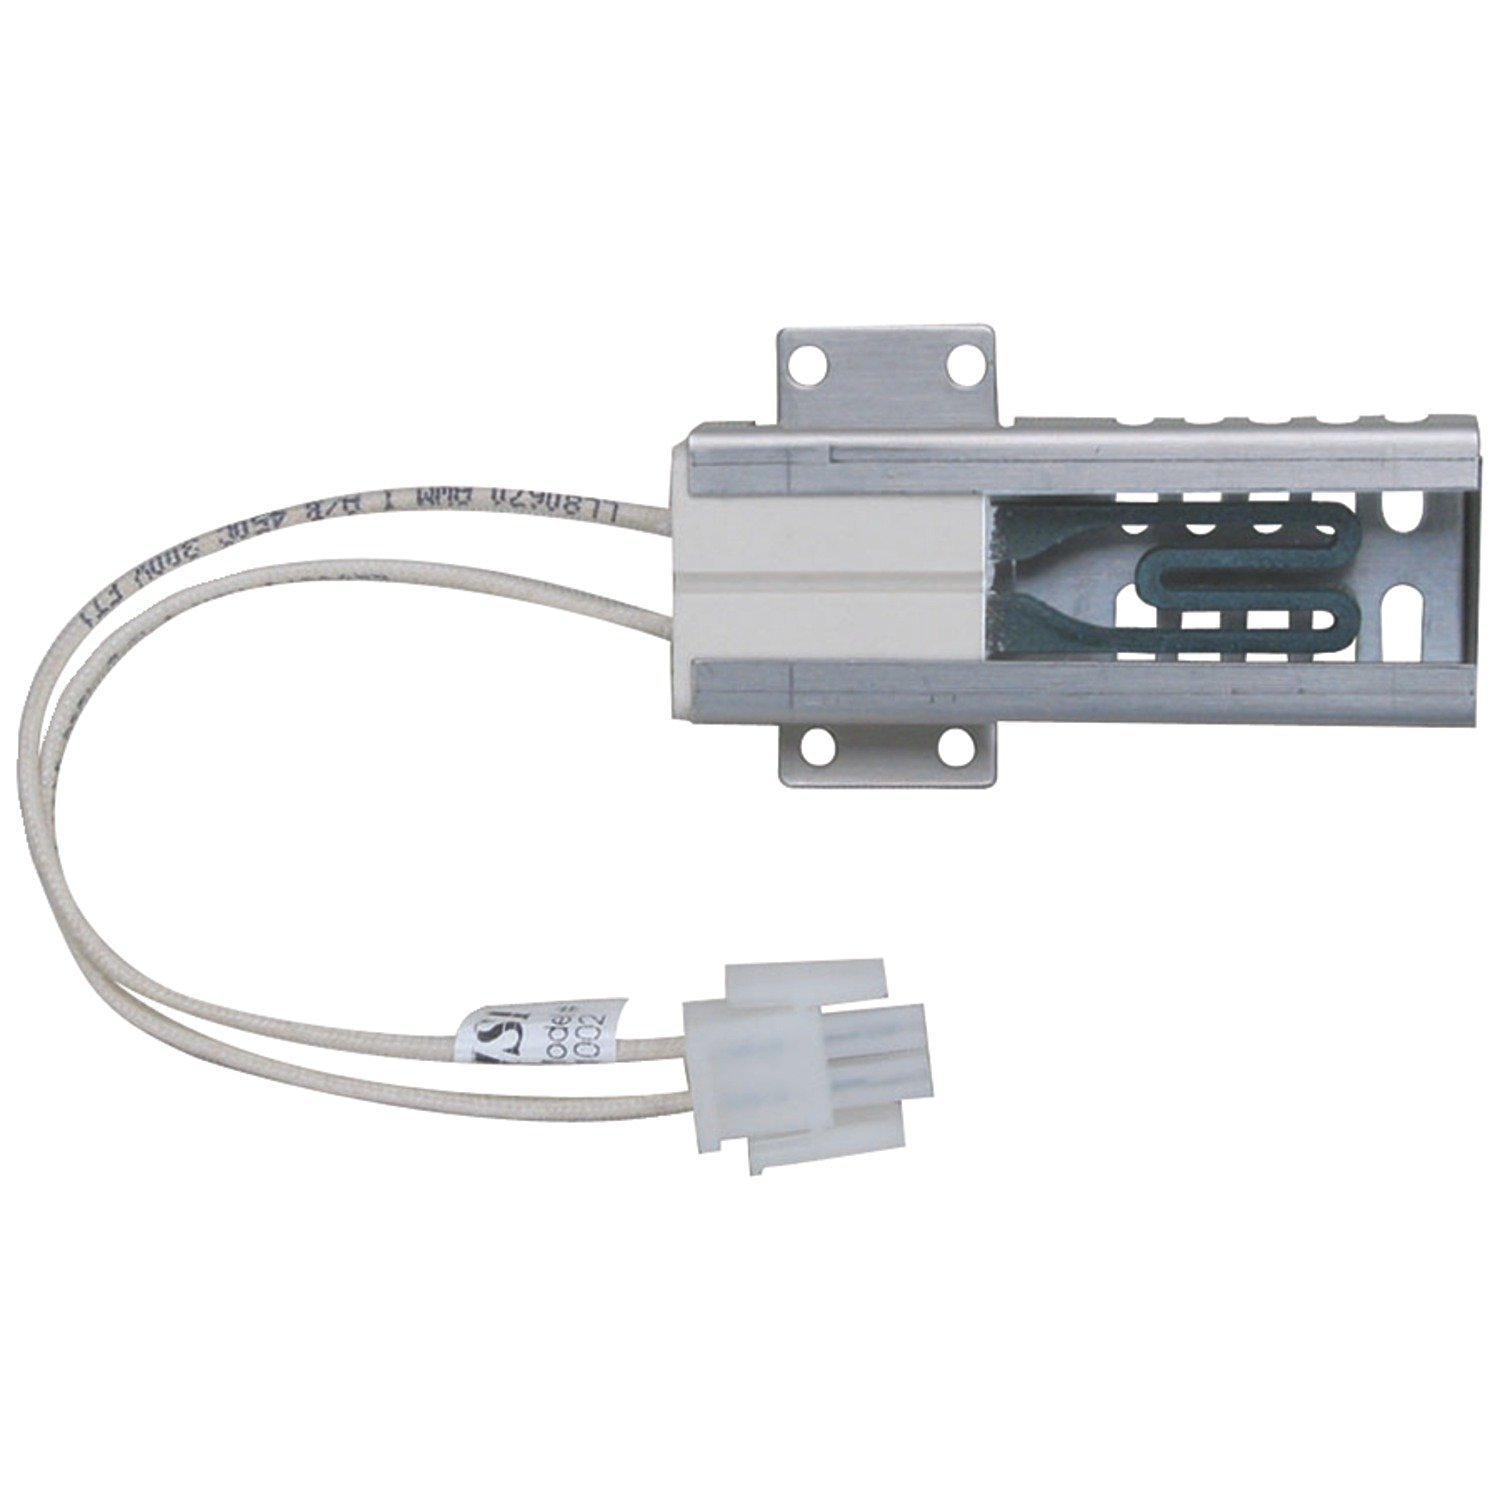 Compatible Oven Igniter for Part Number PS231280, General Electric JGBP85SEJ3SS, Hotpoint RGB526DET1BB, General Electric JGBC20WEA4WW Gas Range